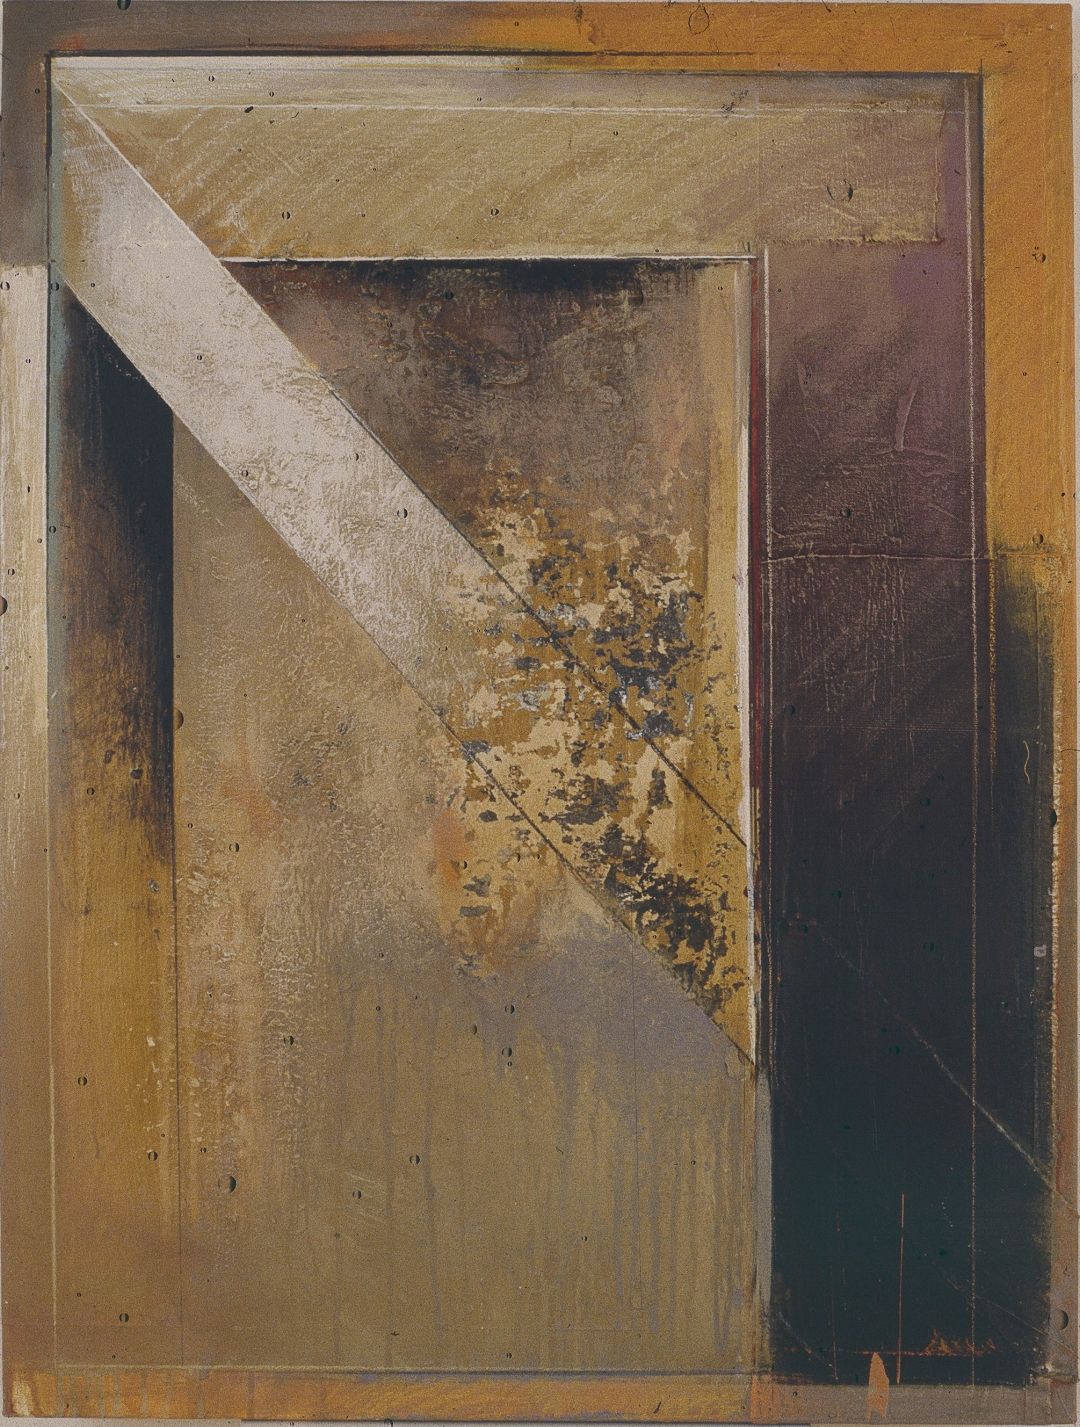 BRACE WITH GOLD 1985